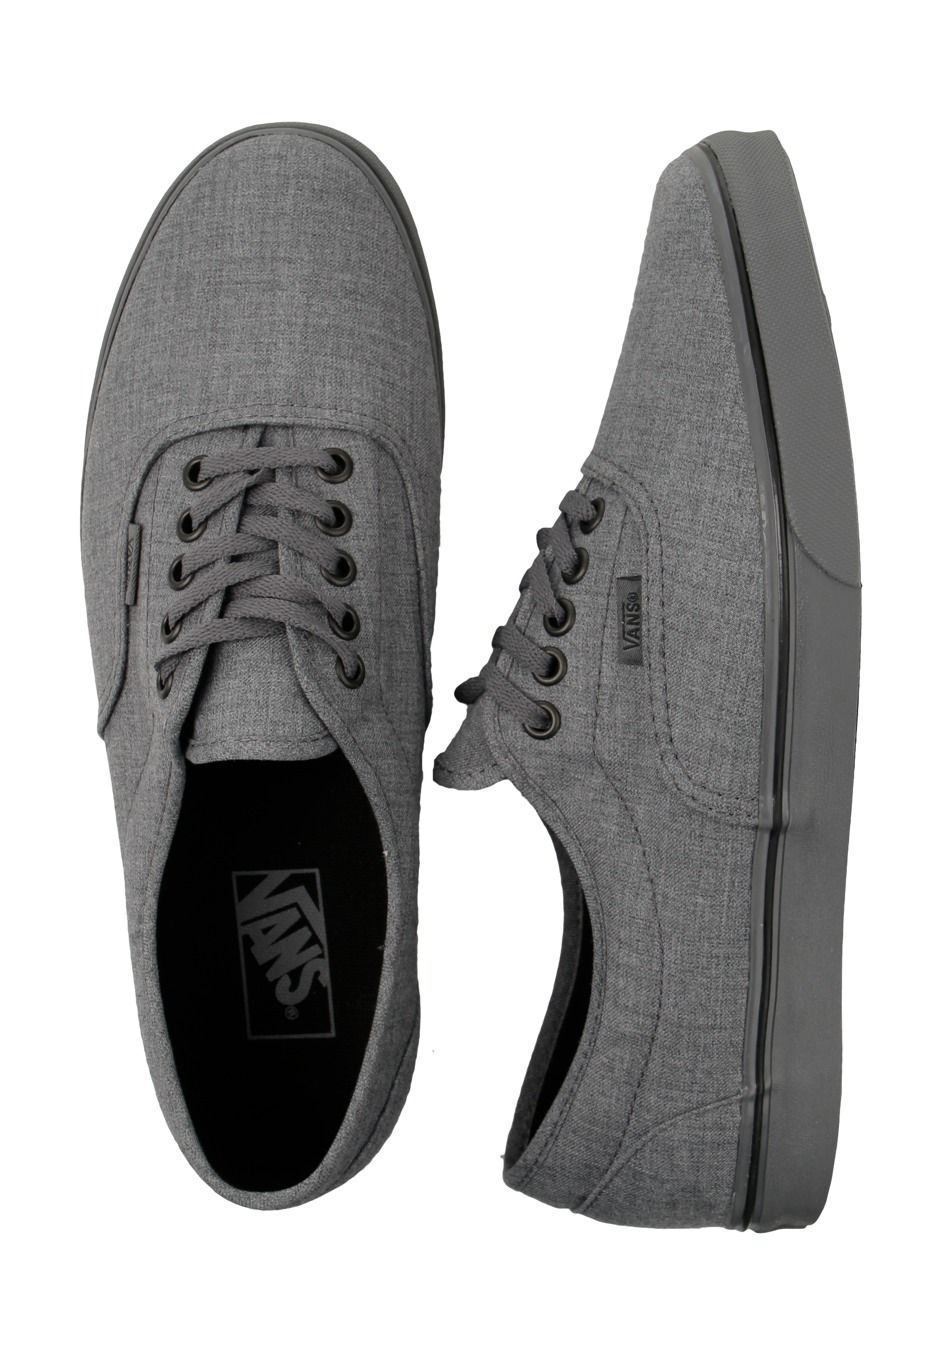 34a245c63b lacing. the latest addition to my vans collection. vans dressed up LPE shoe  in smoked pearl gray